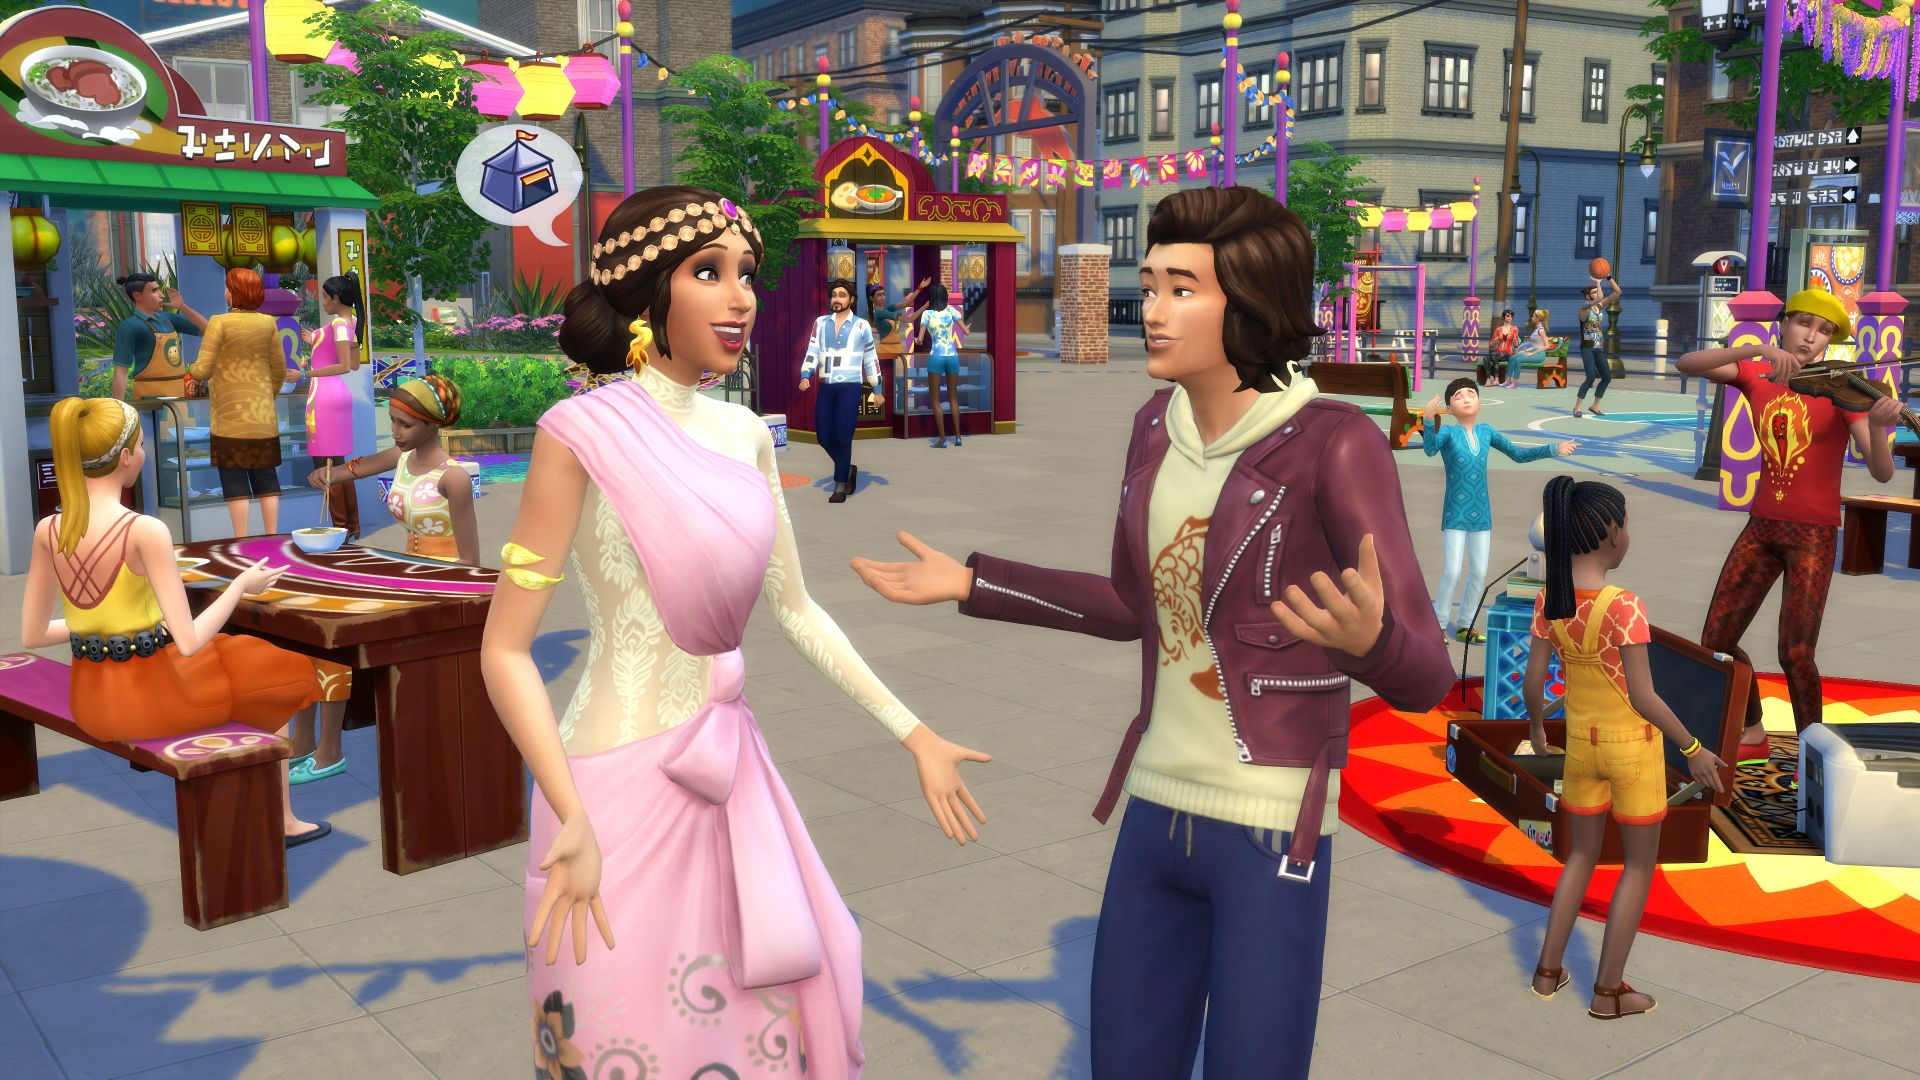 Sims 4 Hairstyle Design Process Detailed By Producer Player